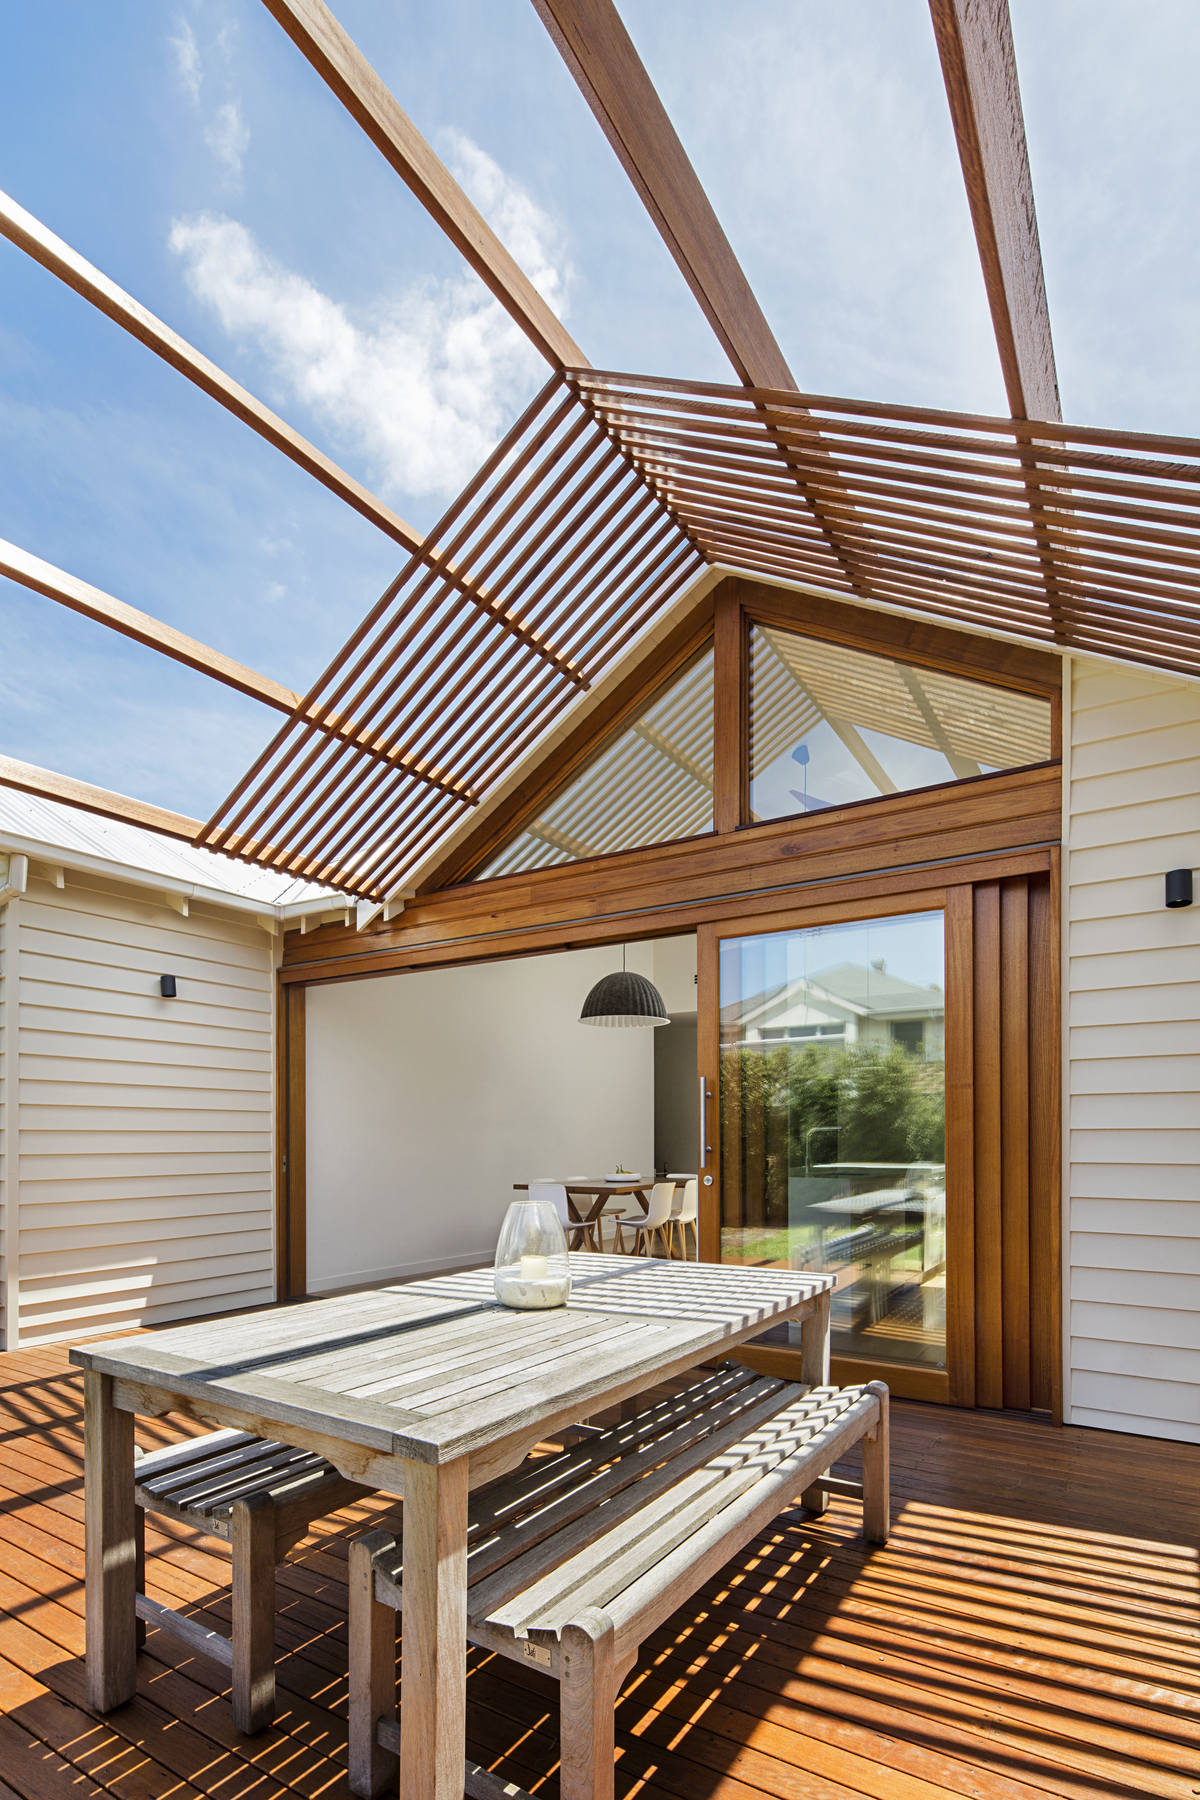 Gable House, Sheri Haby Architects, The Local Project, Australian Architecture and Design (9)